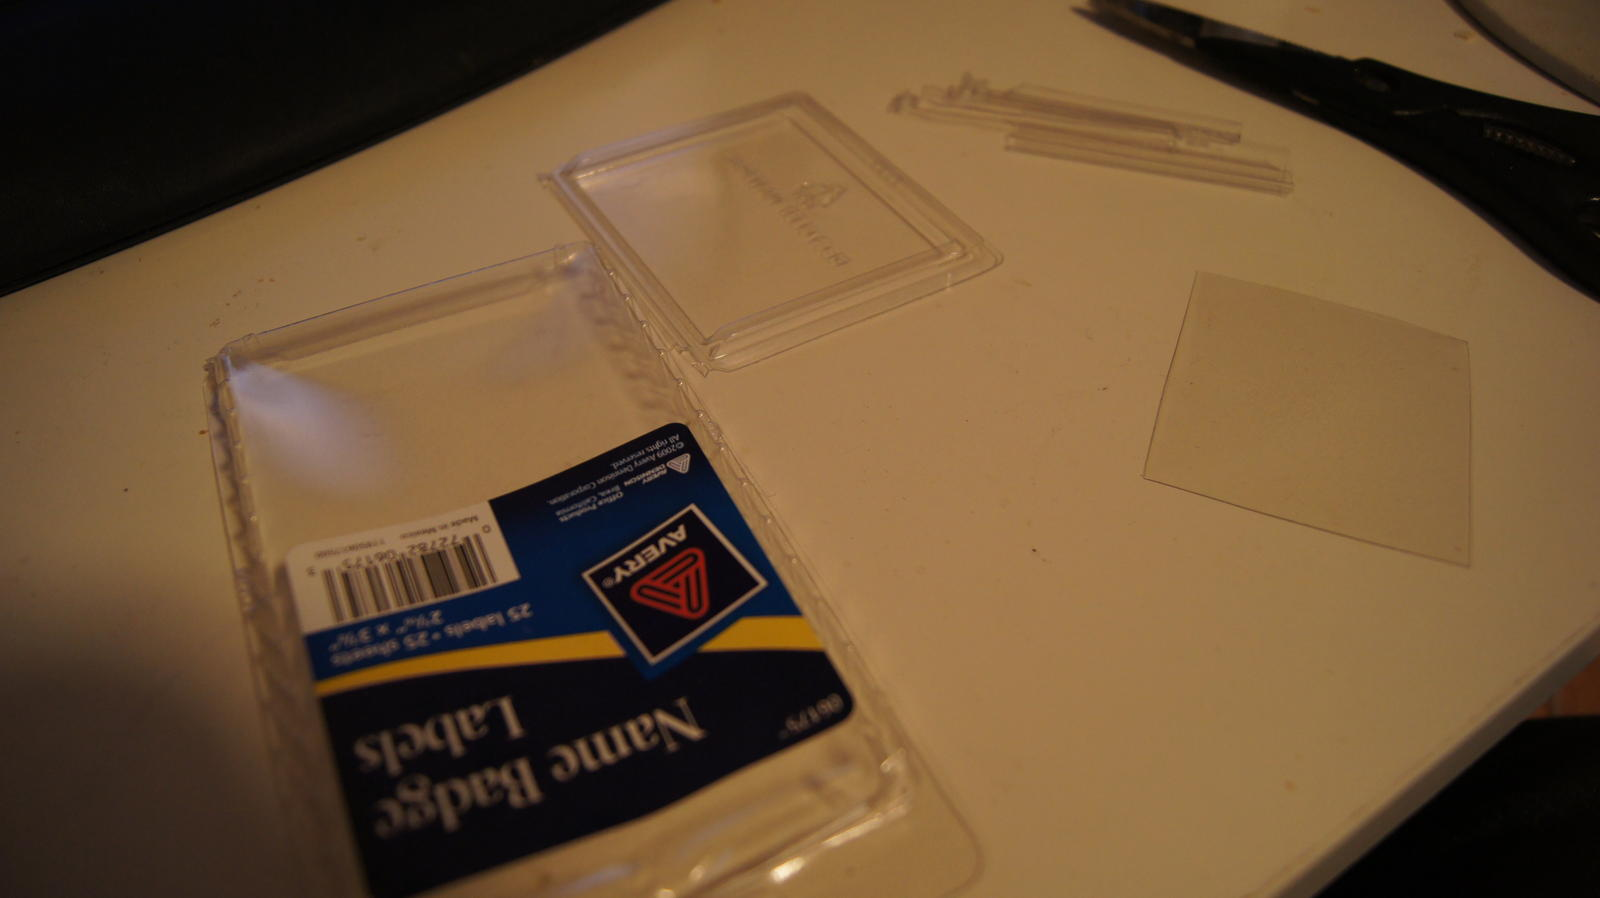 The base material. I used one of those pesky clear packages that you never really get to open properly.